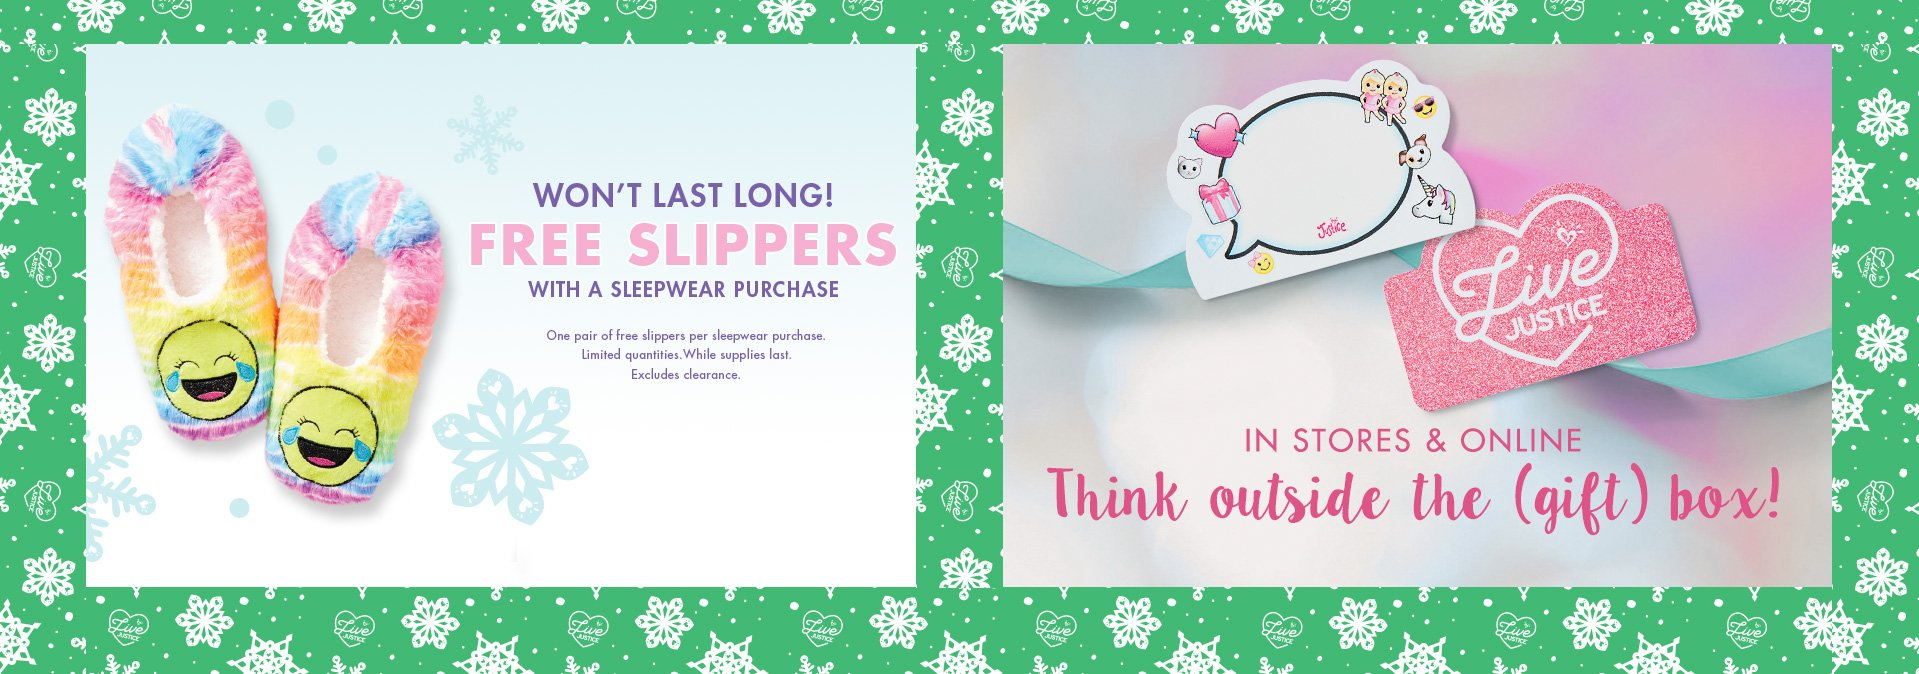 Free slippers with sleepwear purchase, gift cards